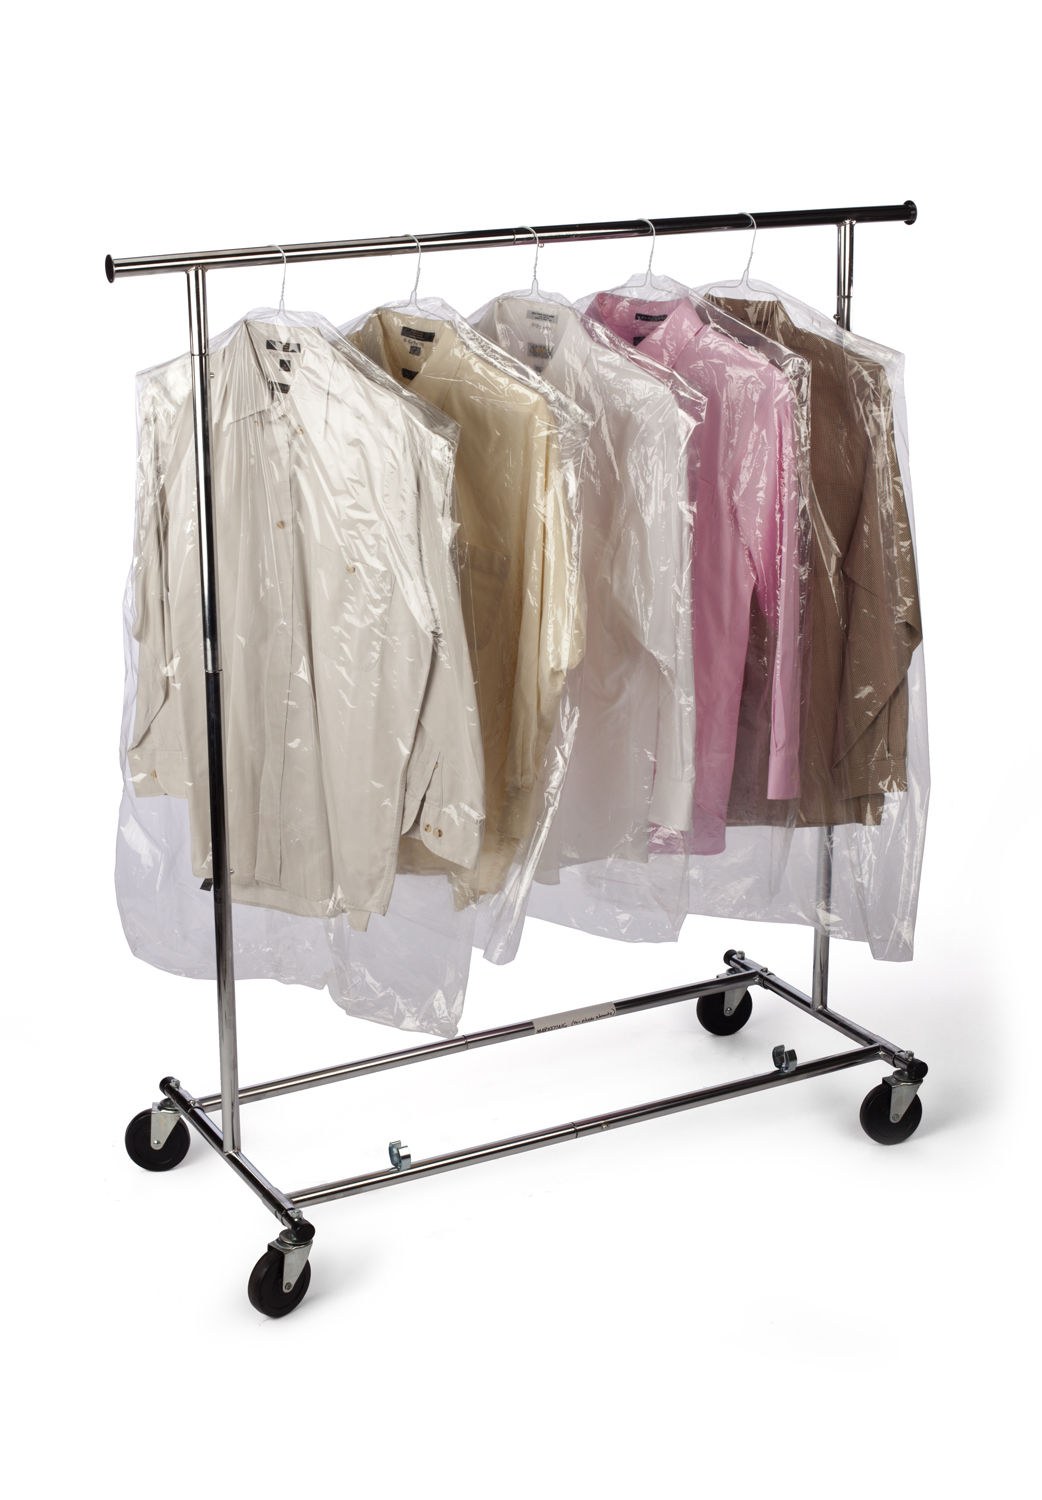 85d554a63d4 Clear Dry Cleaning Garment Bags on a Roll 21 x 4 x 30 x 0.6 Mil. Tap to  expand